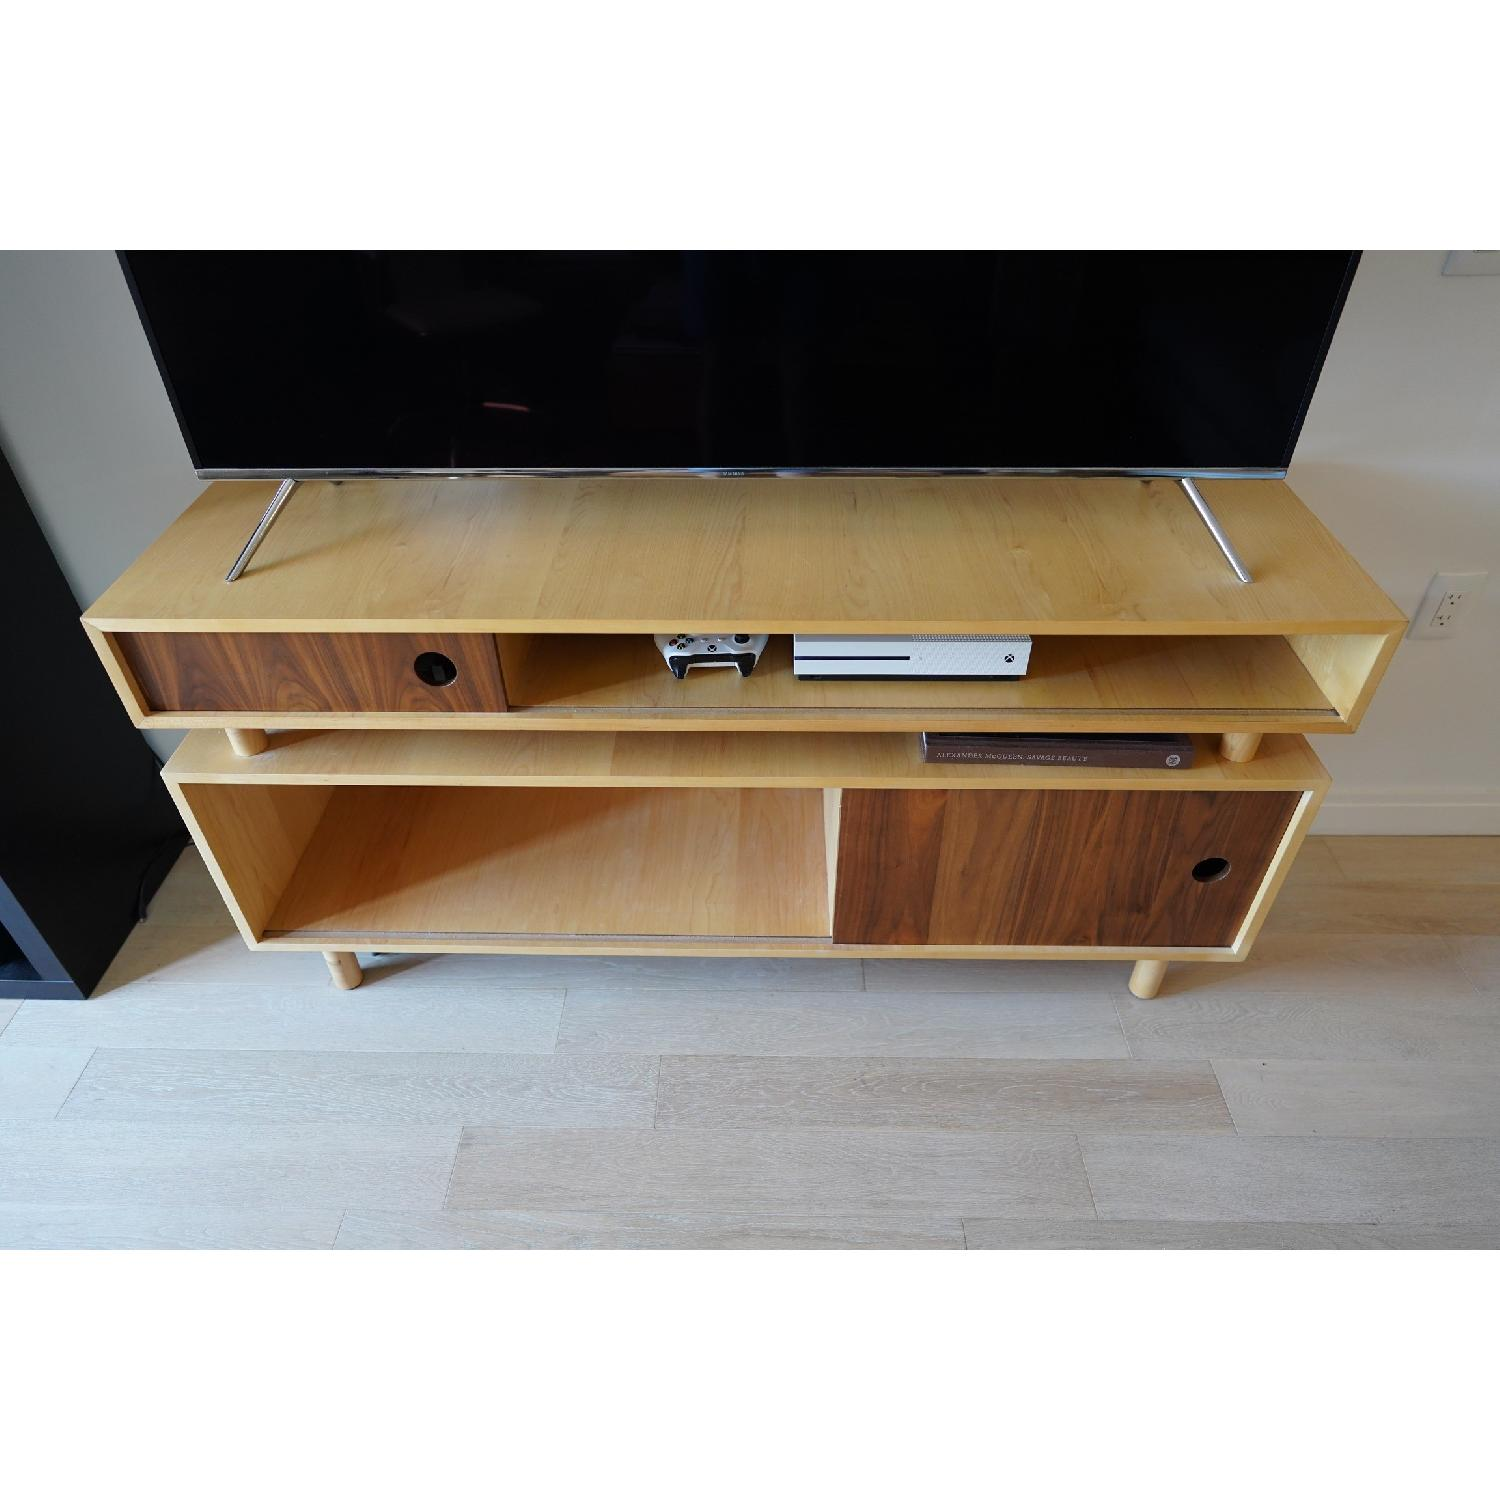 Urban Outfitters Hamilton Wood Media Console - image-1